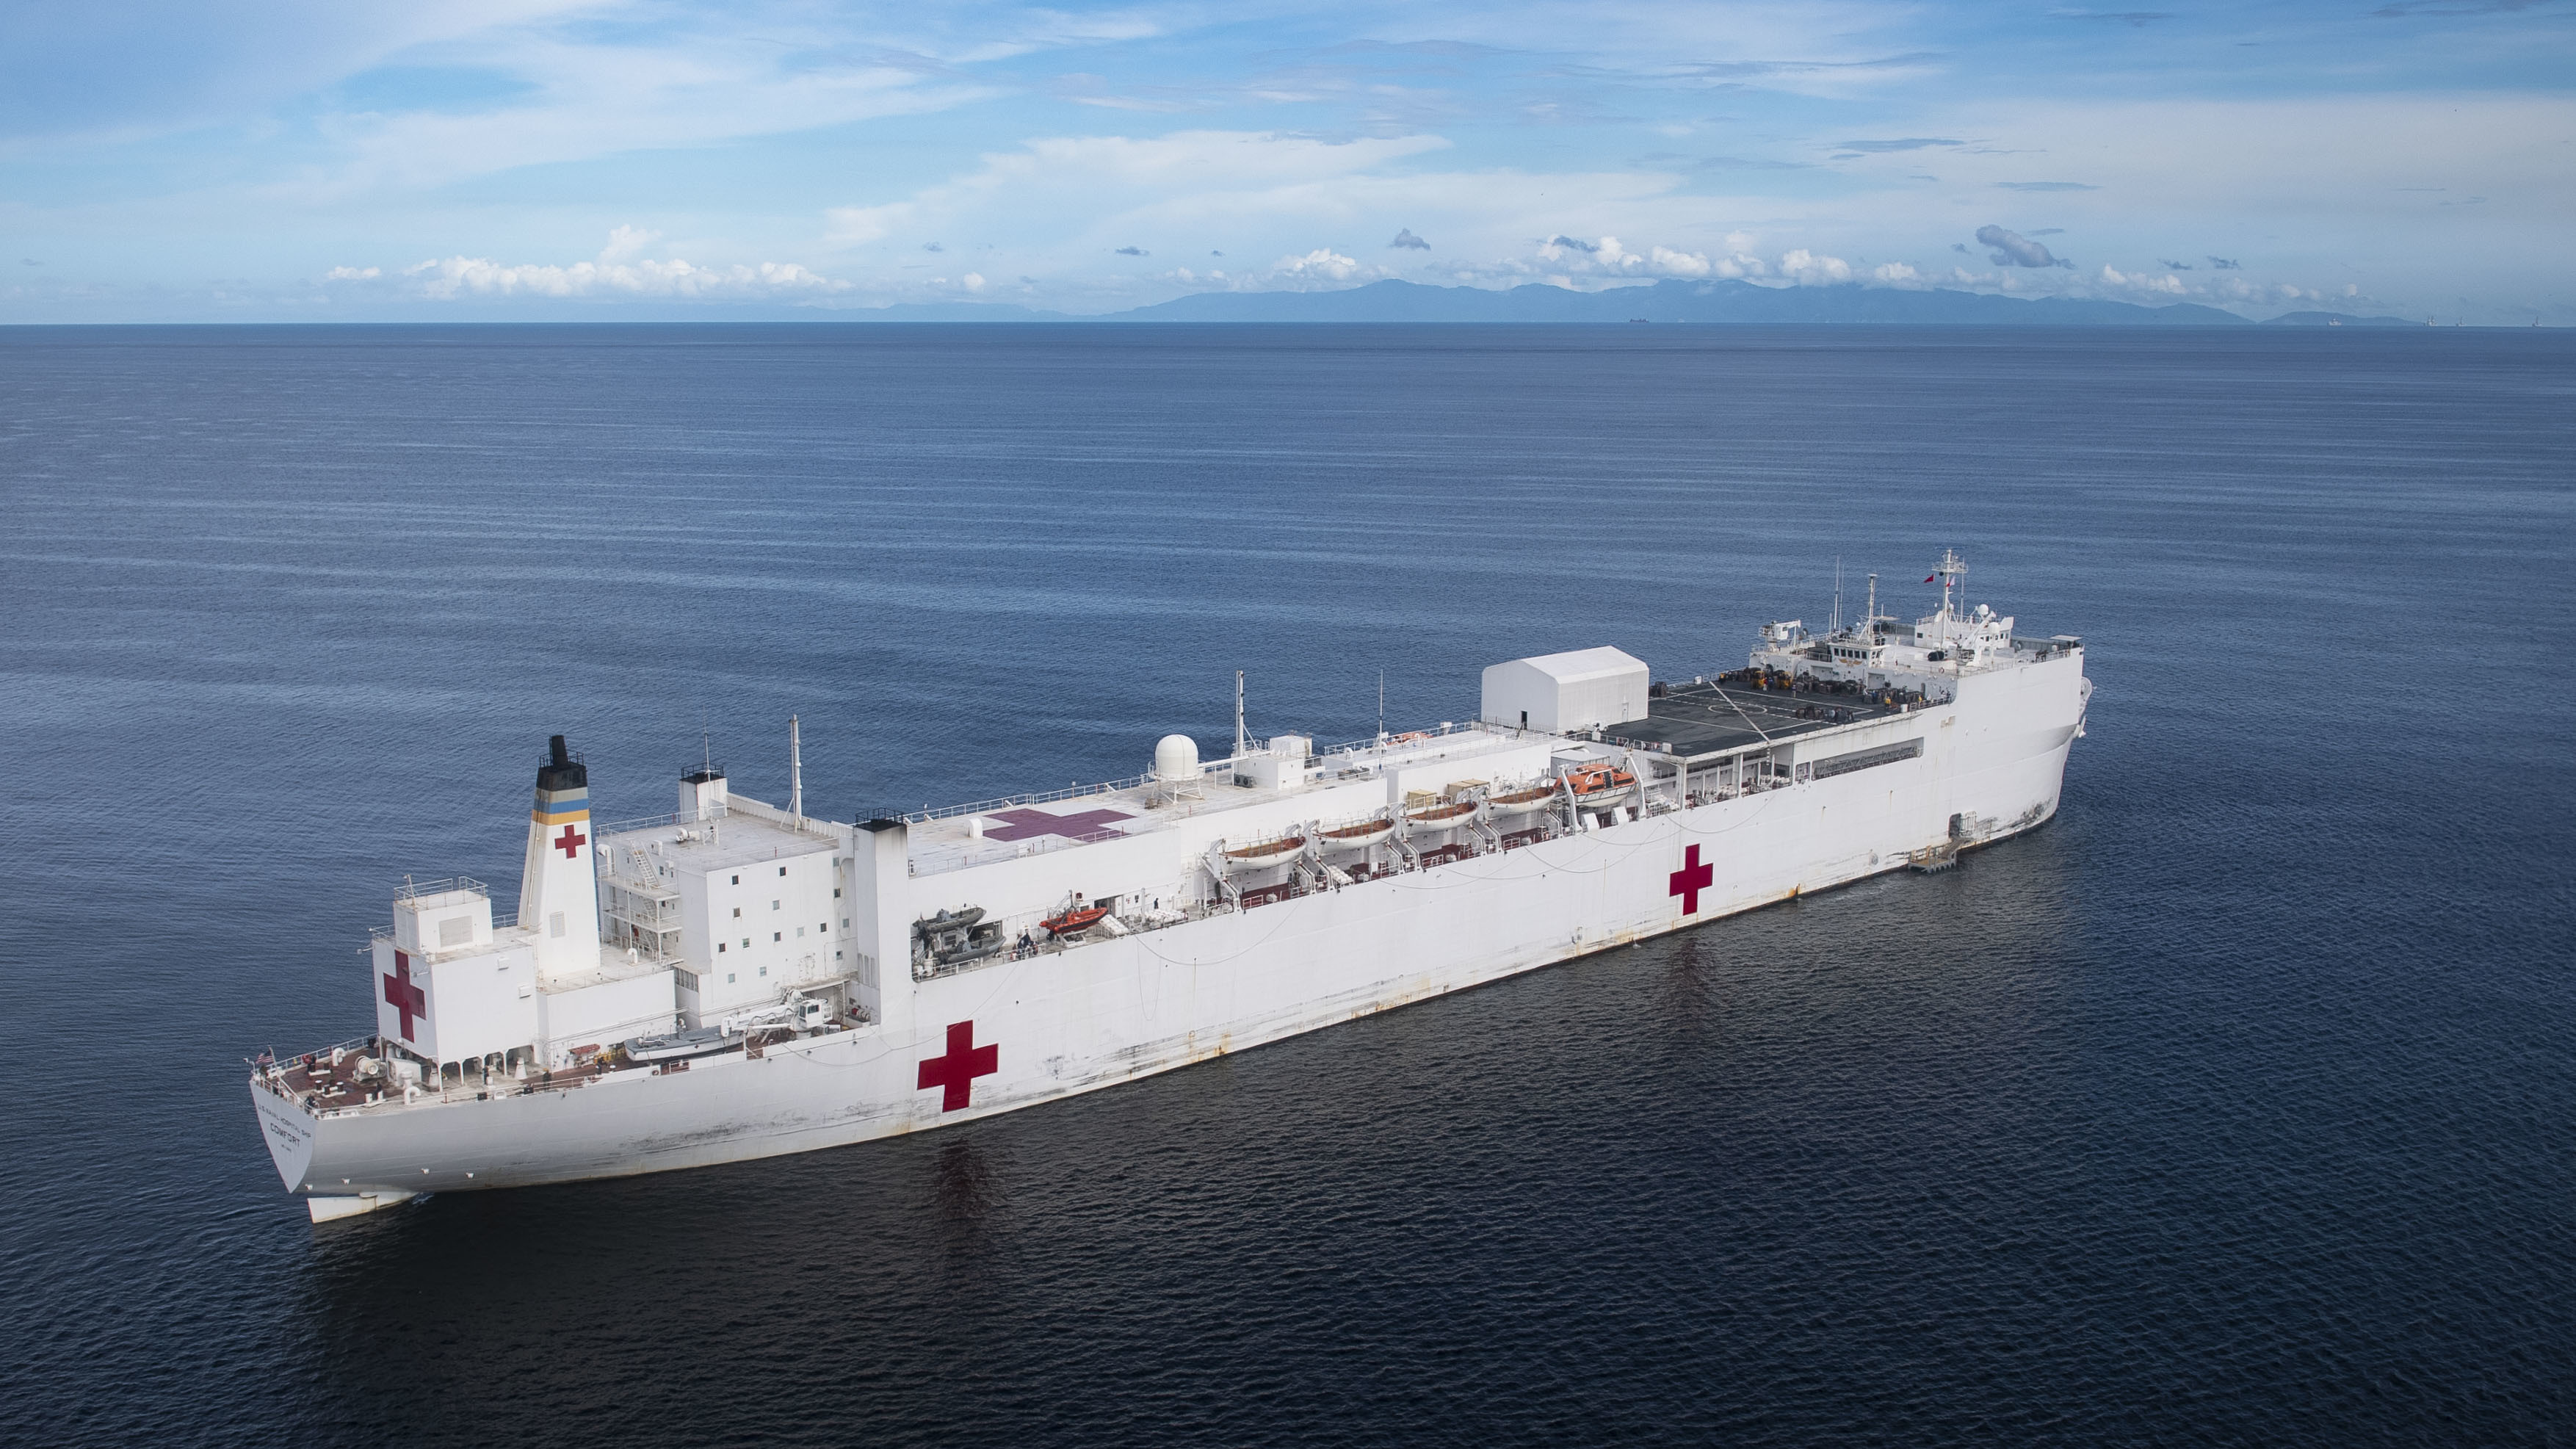 USNS Comfort at Sea.